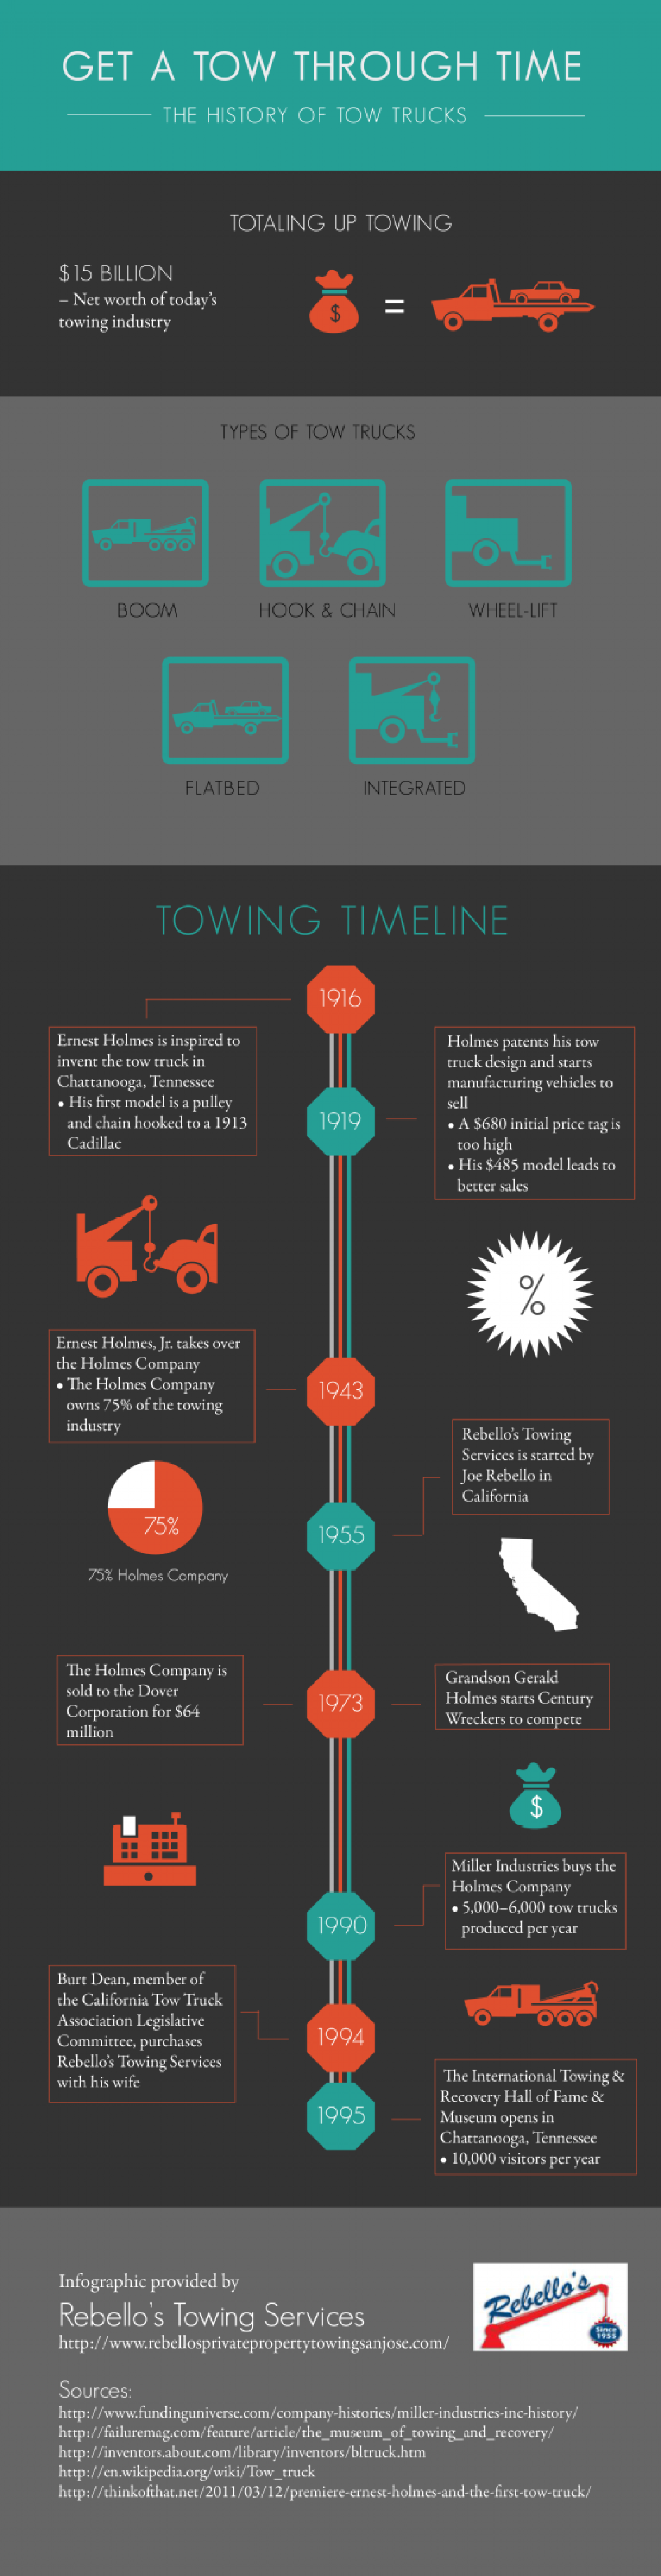 Get a Tow Through Time: The History of Tow Trucks Infographic